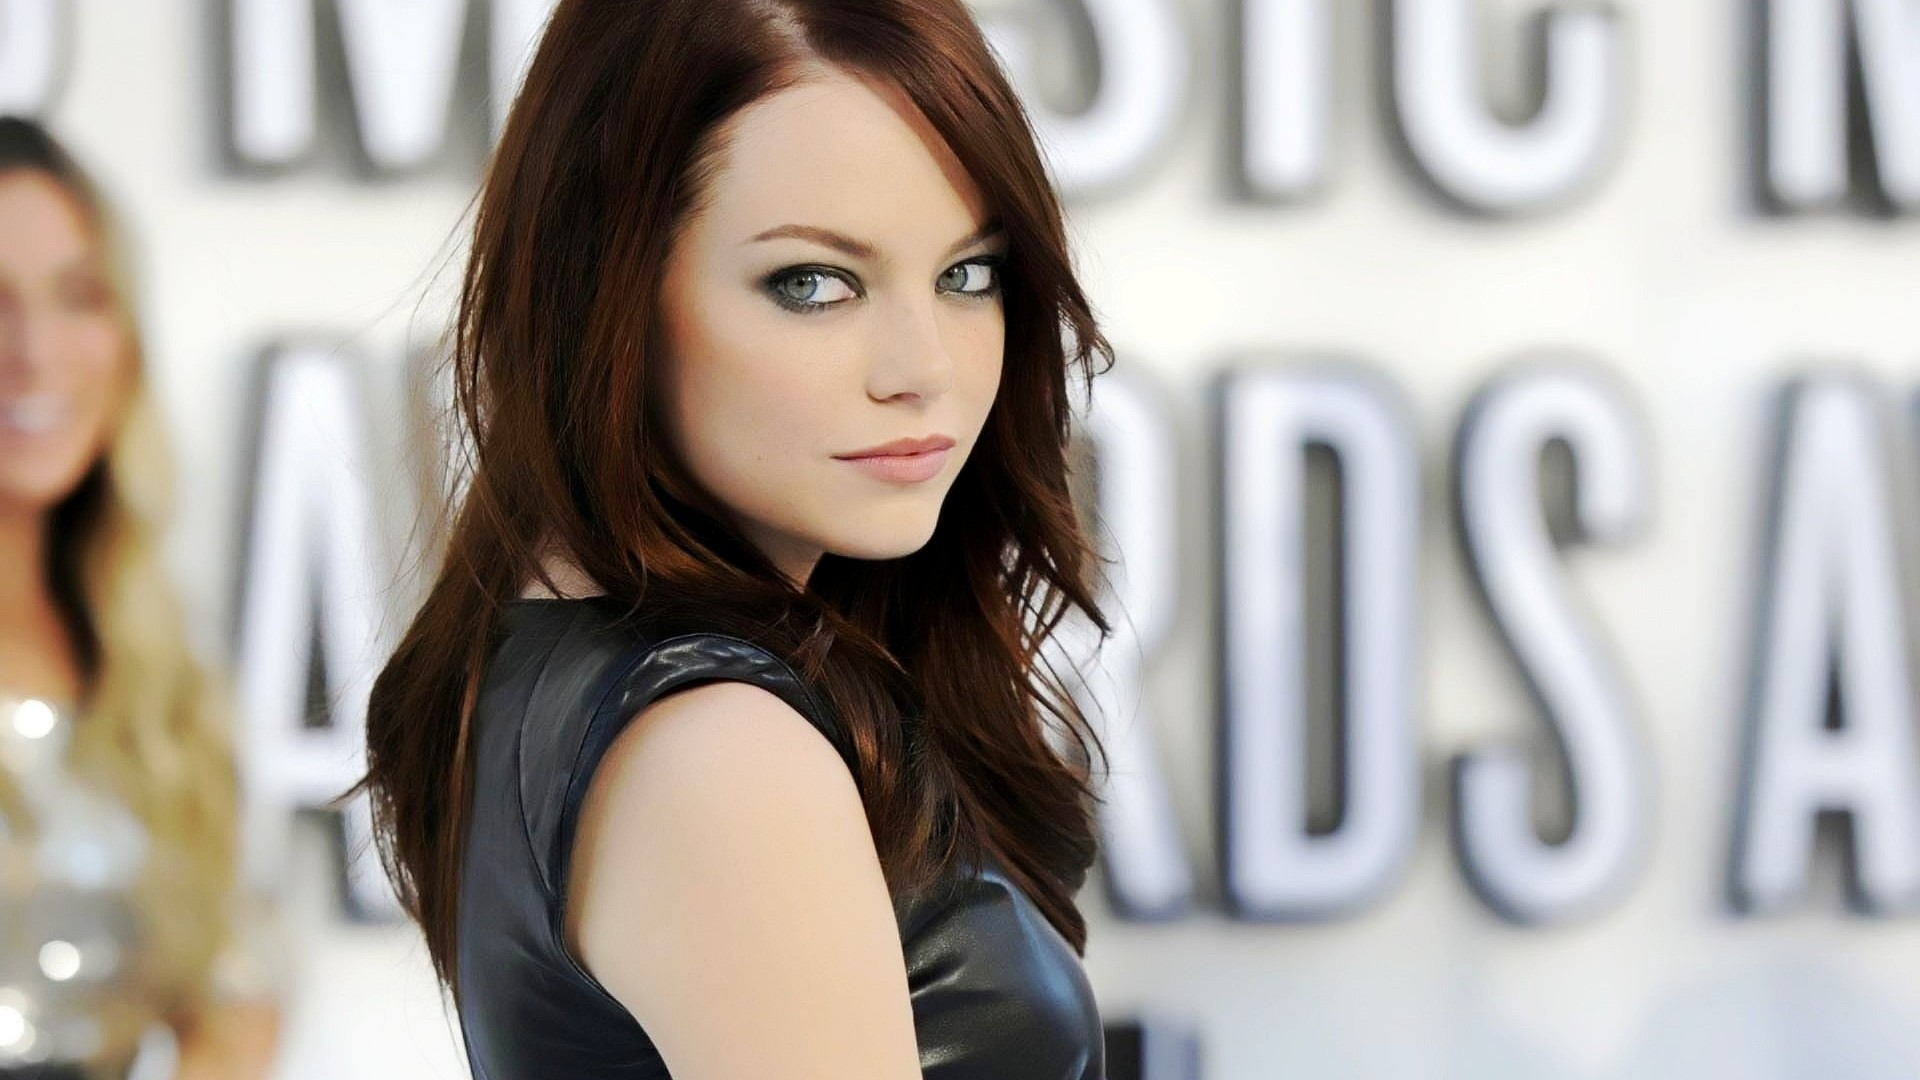 Hollywood actress emily stone pictures